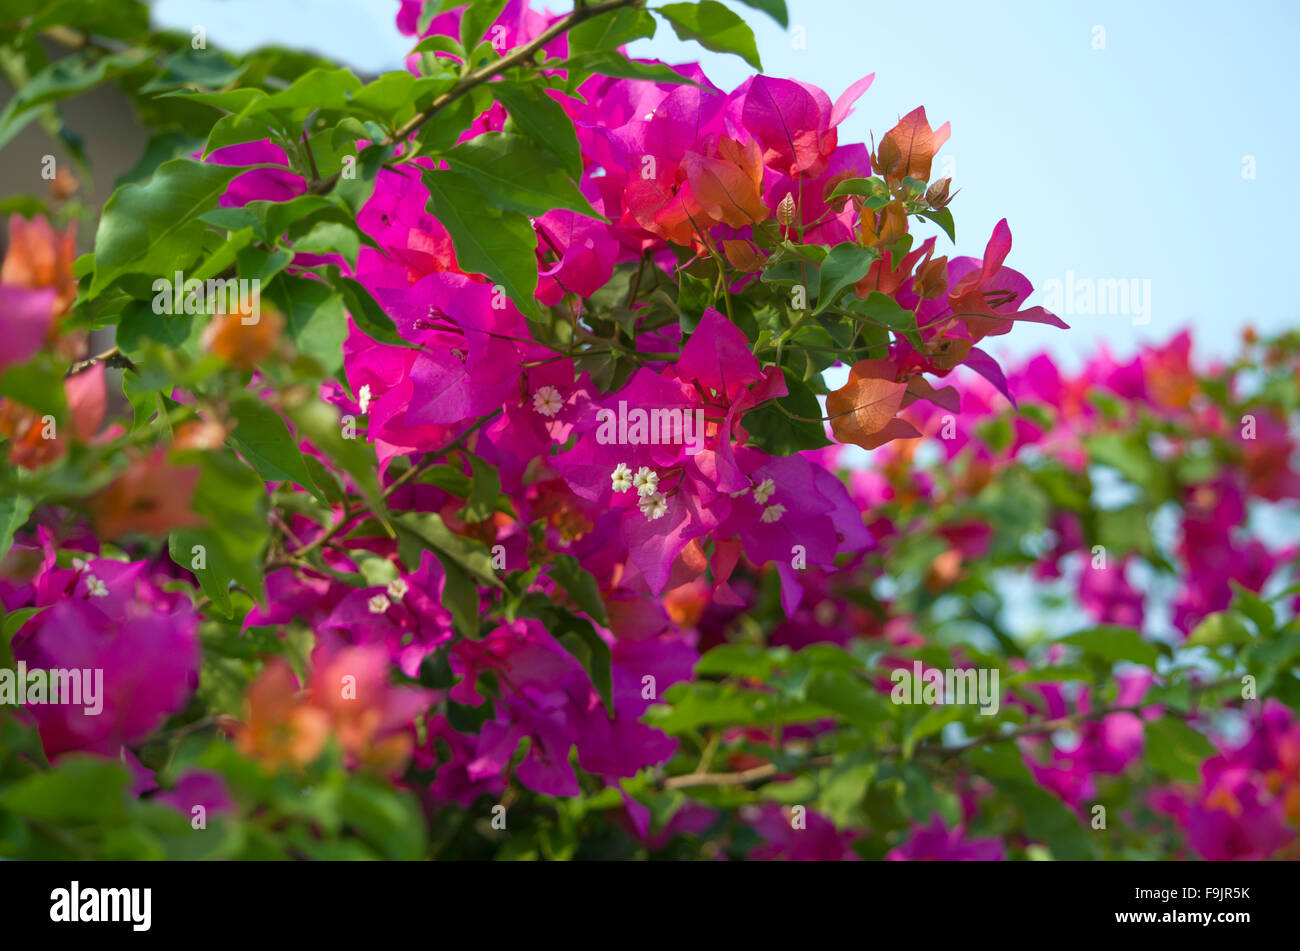 Bugenvilley flowers tropical ,flowers, plants, bushes, lianas, Bugenvilley, tropics, tropical plants, flora, Asia, - Stock Image